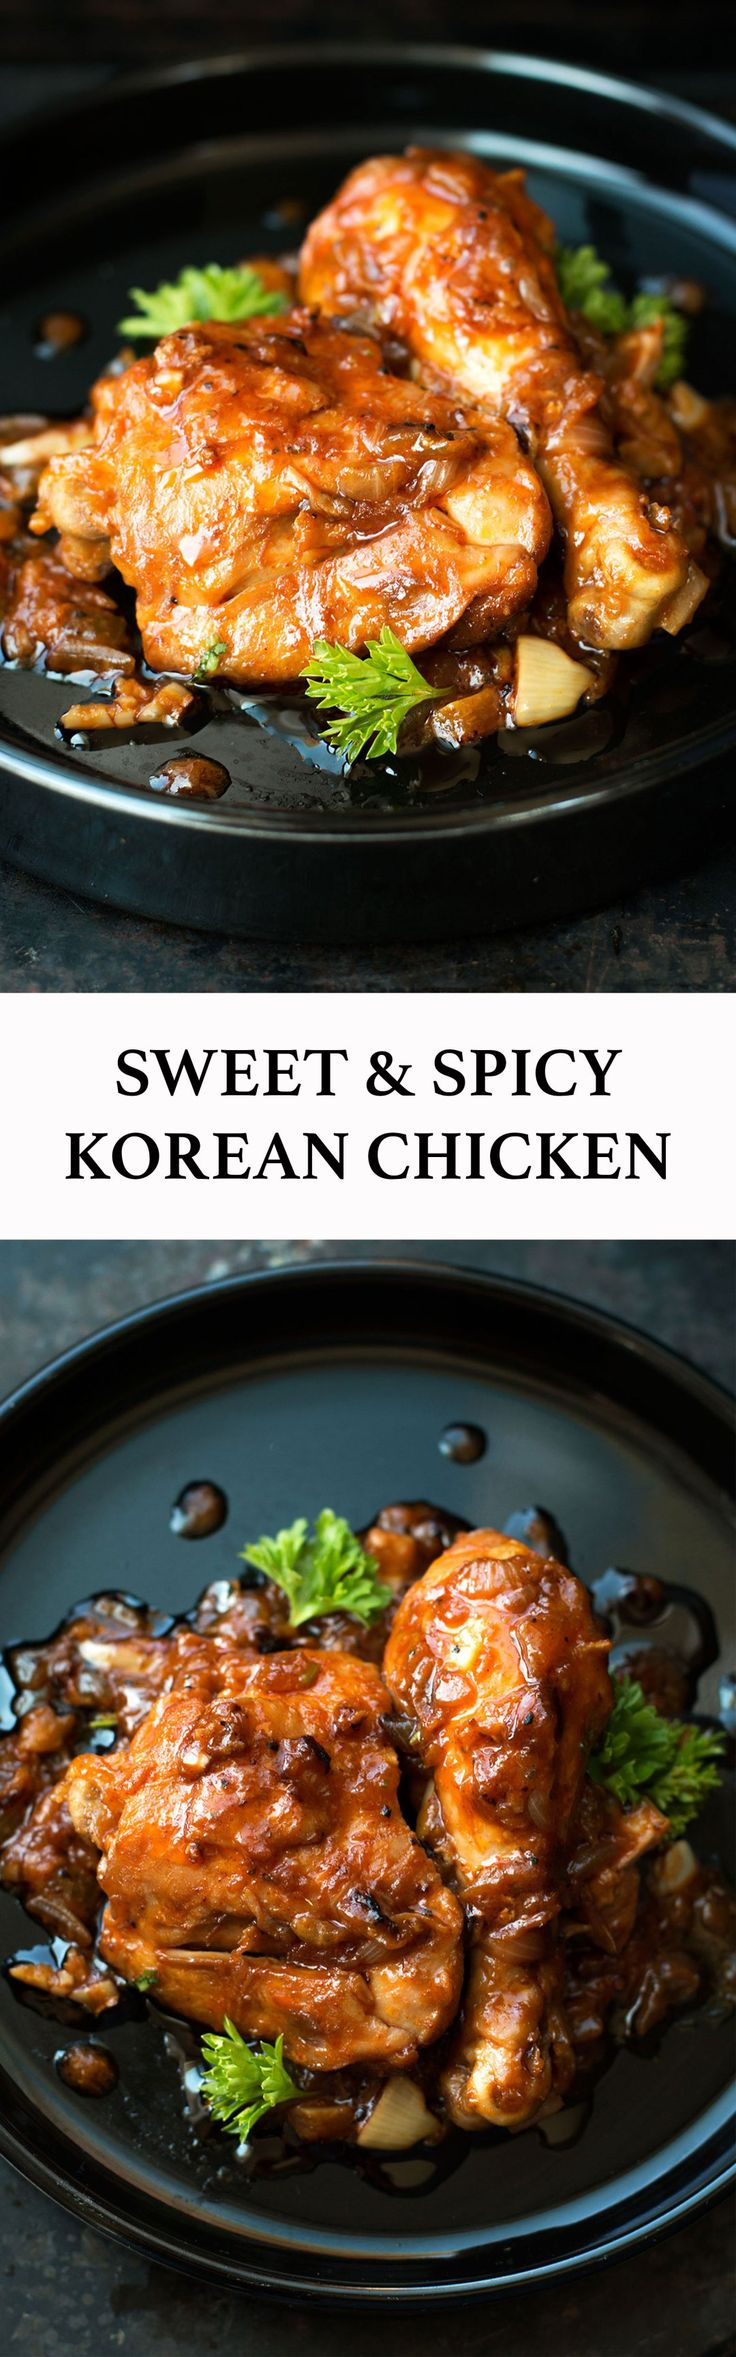 GOCHUJANG-SWEET-SPICY-KOREAN-CHICKEN-RECIPE. Easy marinate chicken, korean chicken inspired recipe with hot pepper paste.